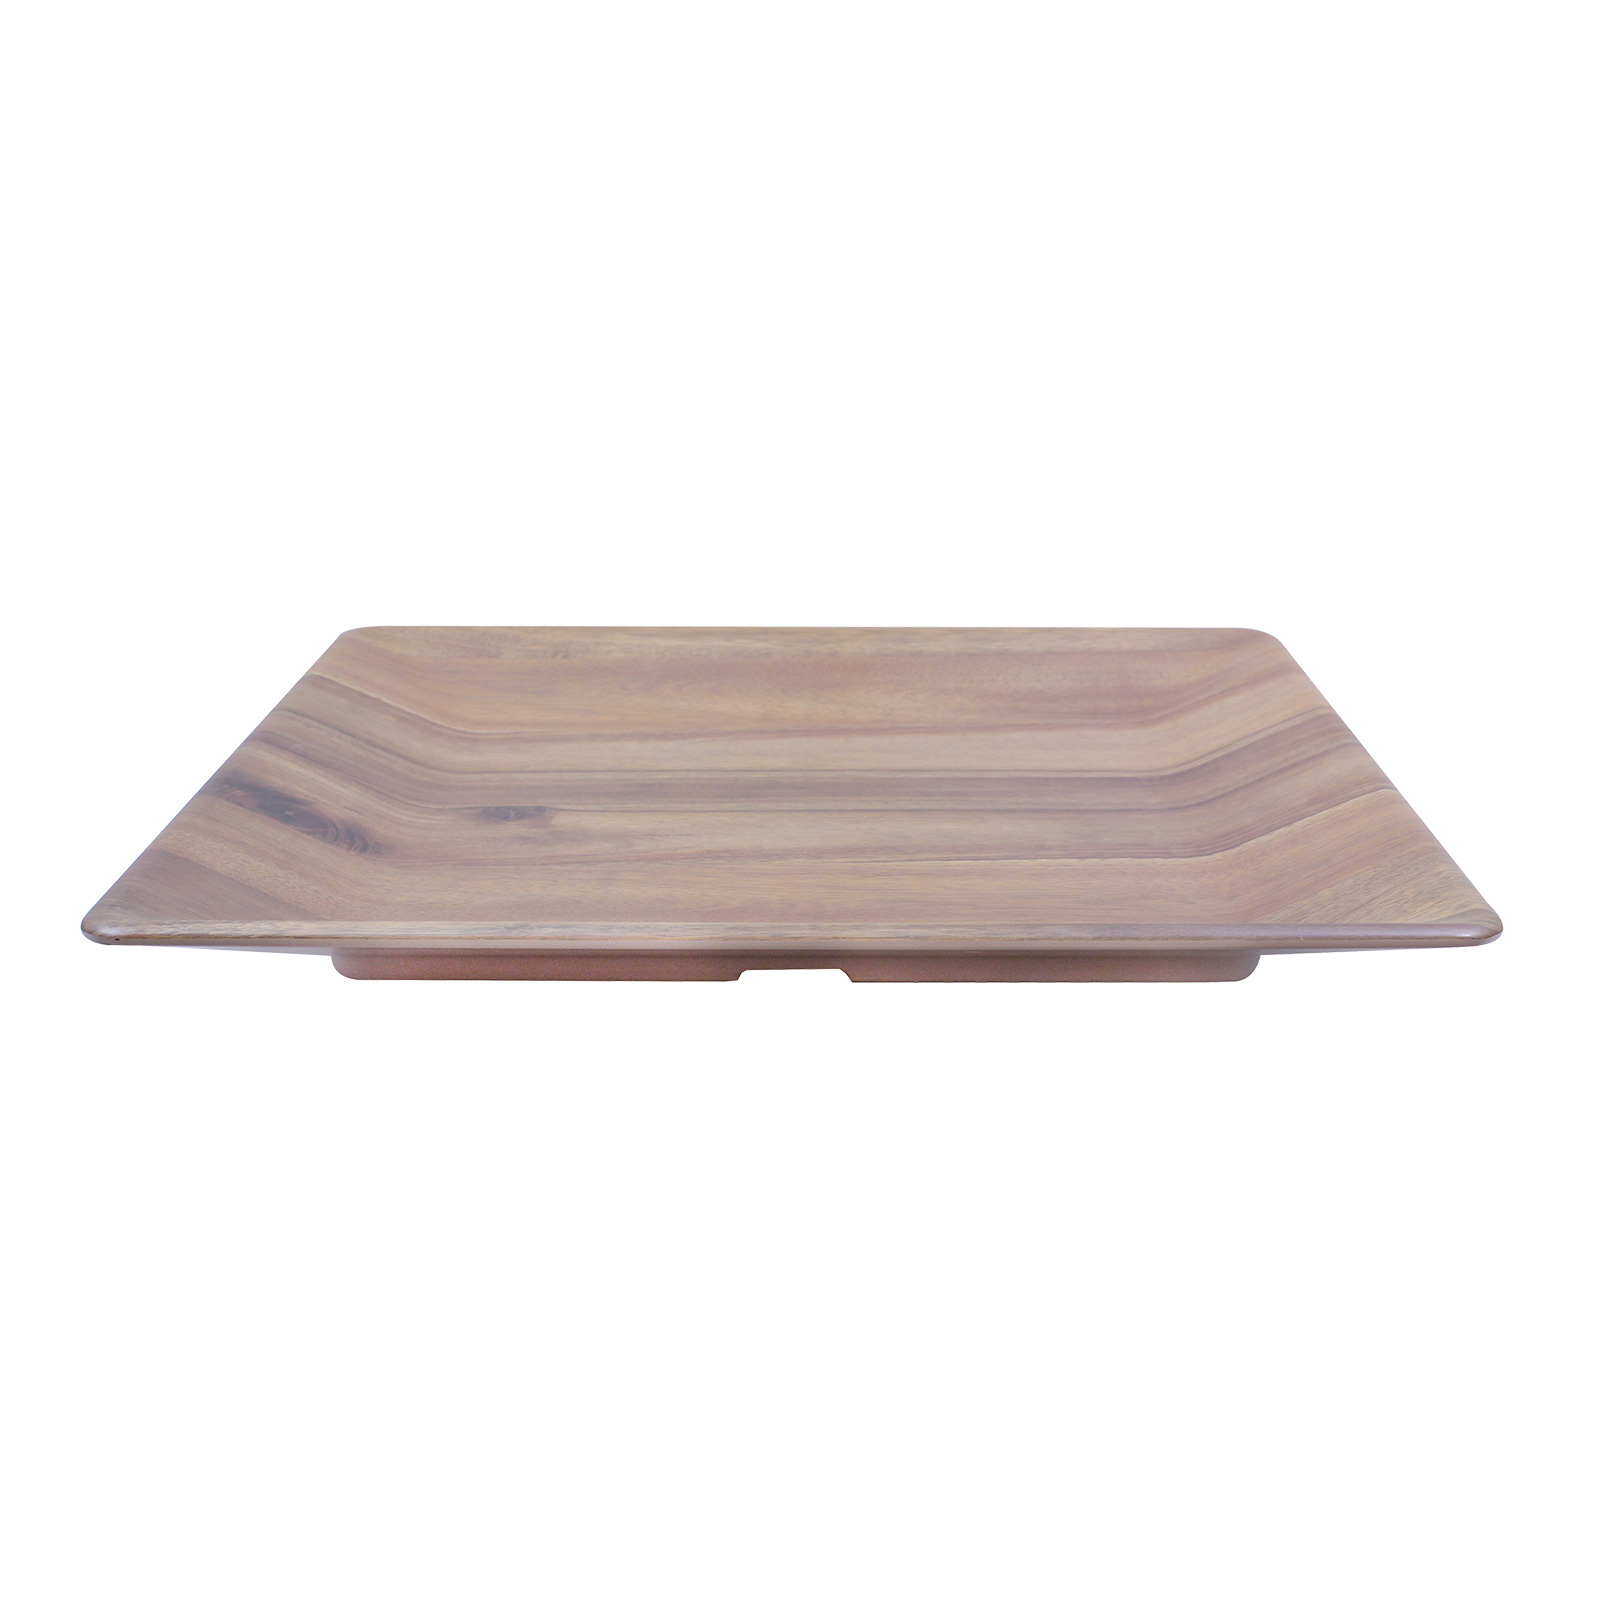 TableCraft Products M1919ACA serving & display tray